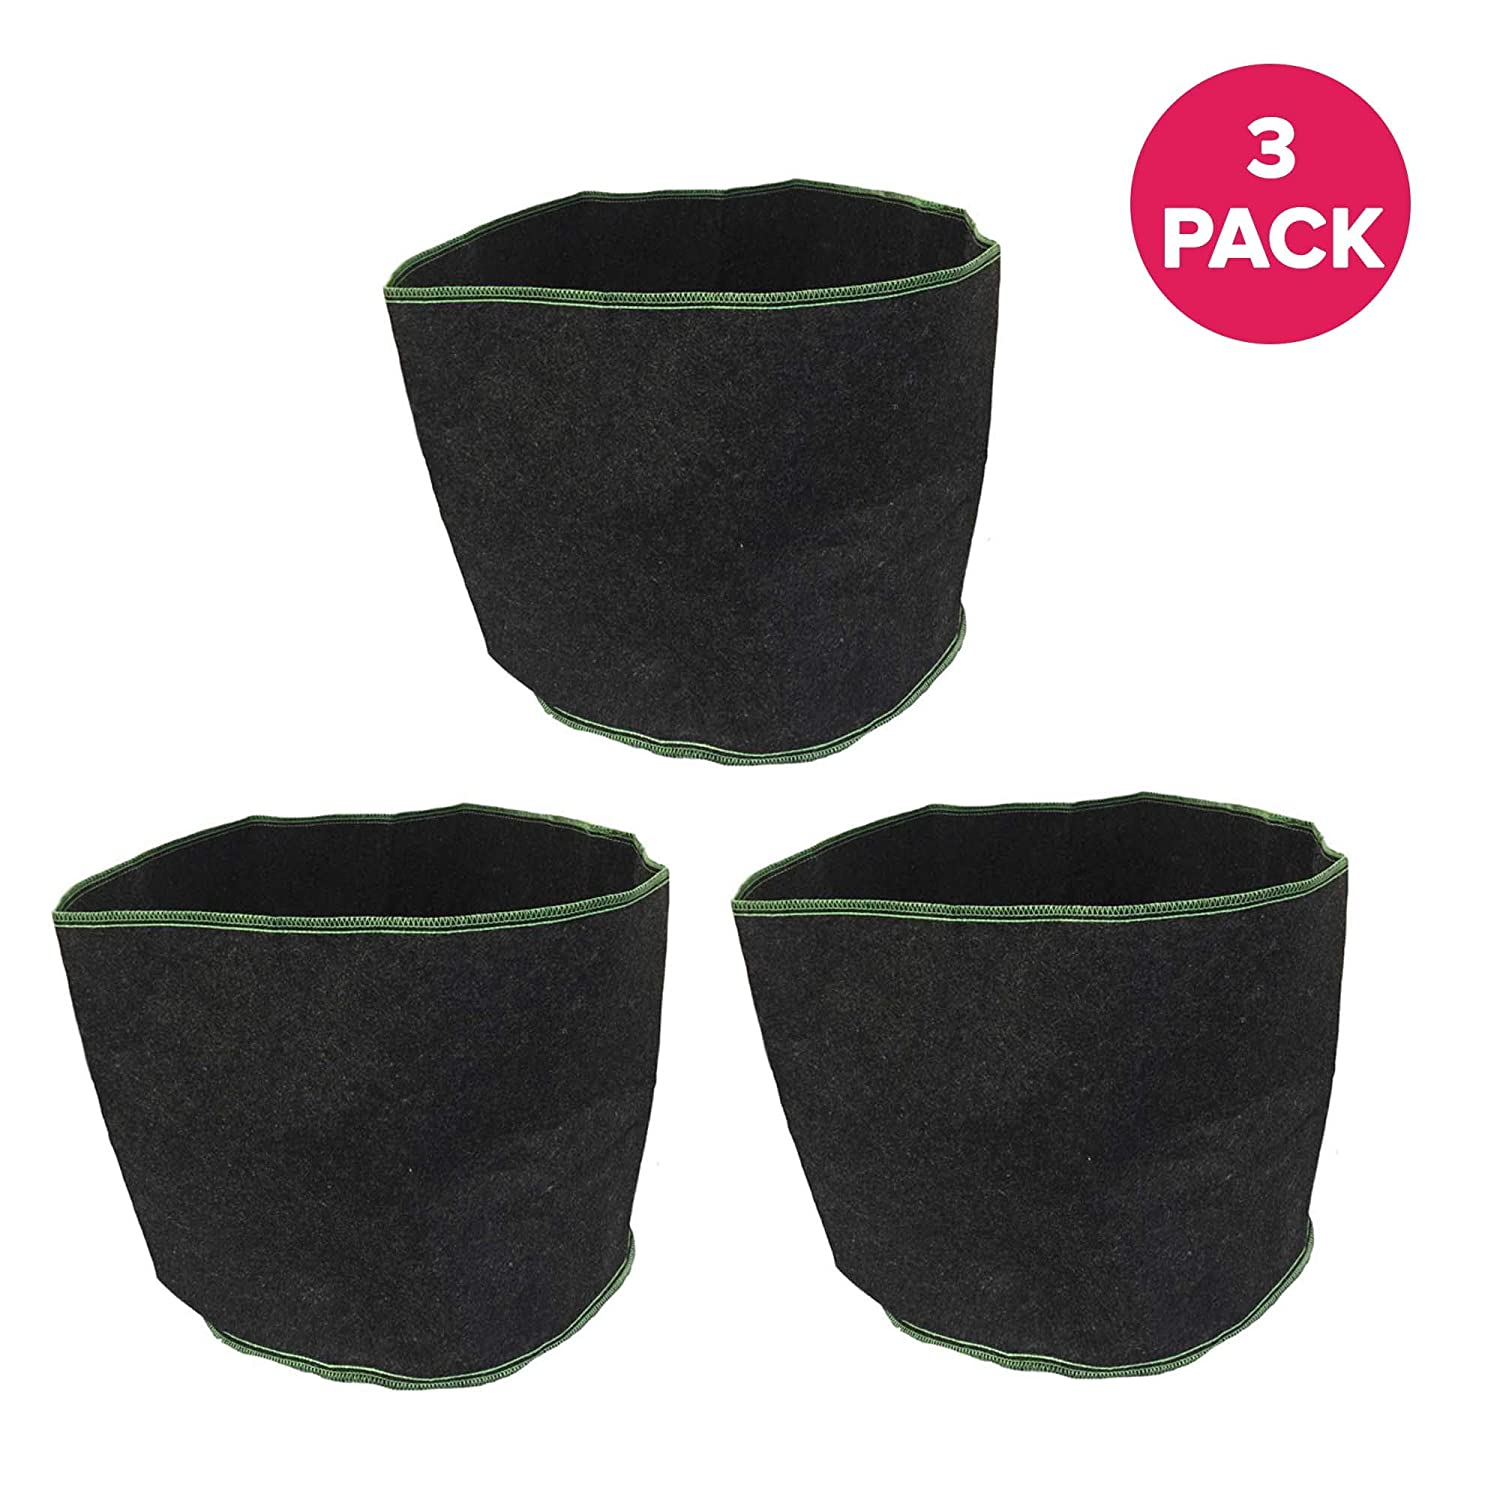 Think Crucial Durable 10 Gallon Fruit Vegetables Reusable Grow Bag 13 x 15.5 in Soft-Sided Container, Perfect Grow Pot for Flowers, Herbs, Tree Seedlings, Tomatoes, Indoors Outdoors 3 Pack